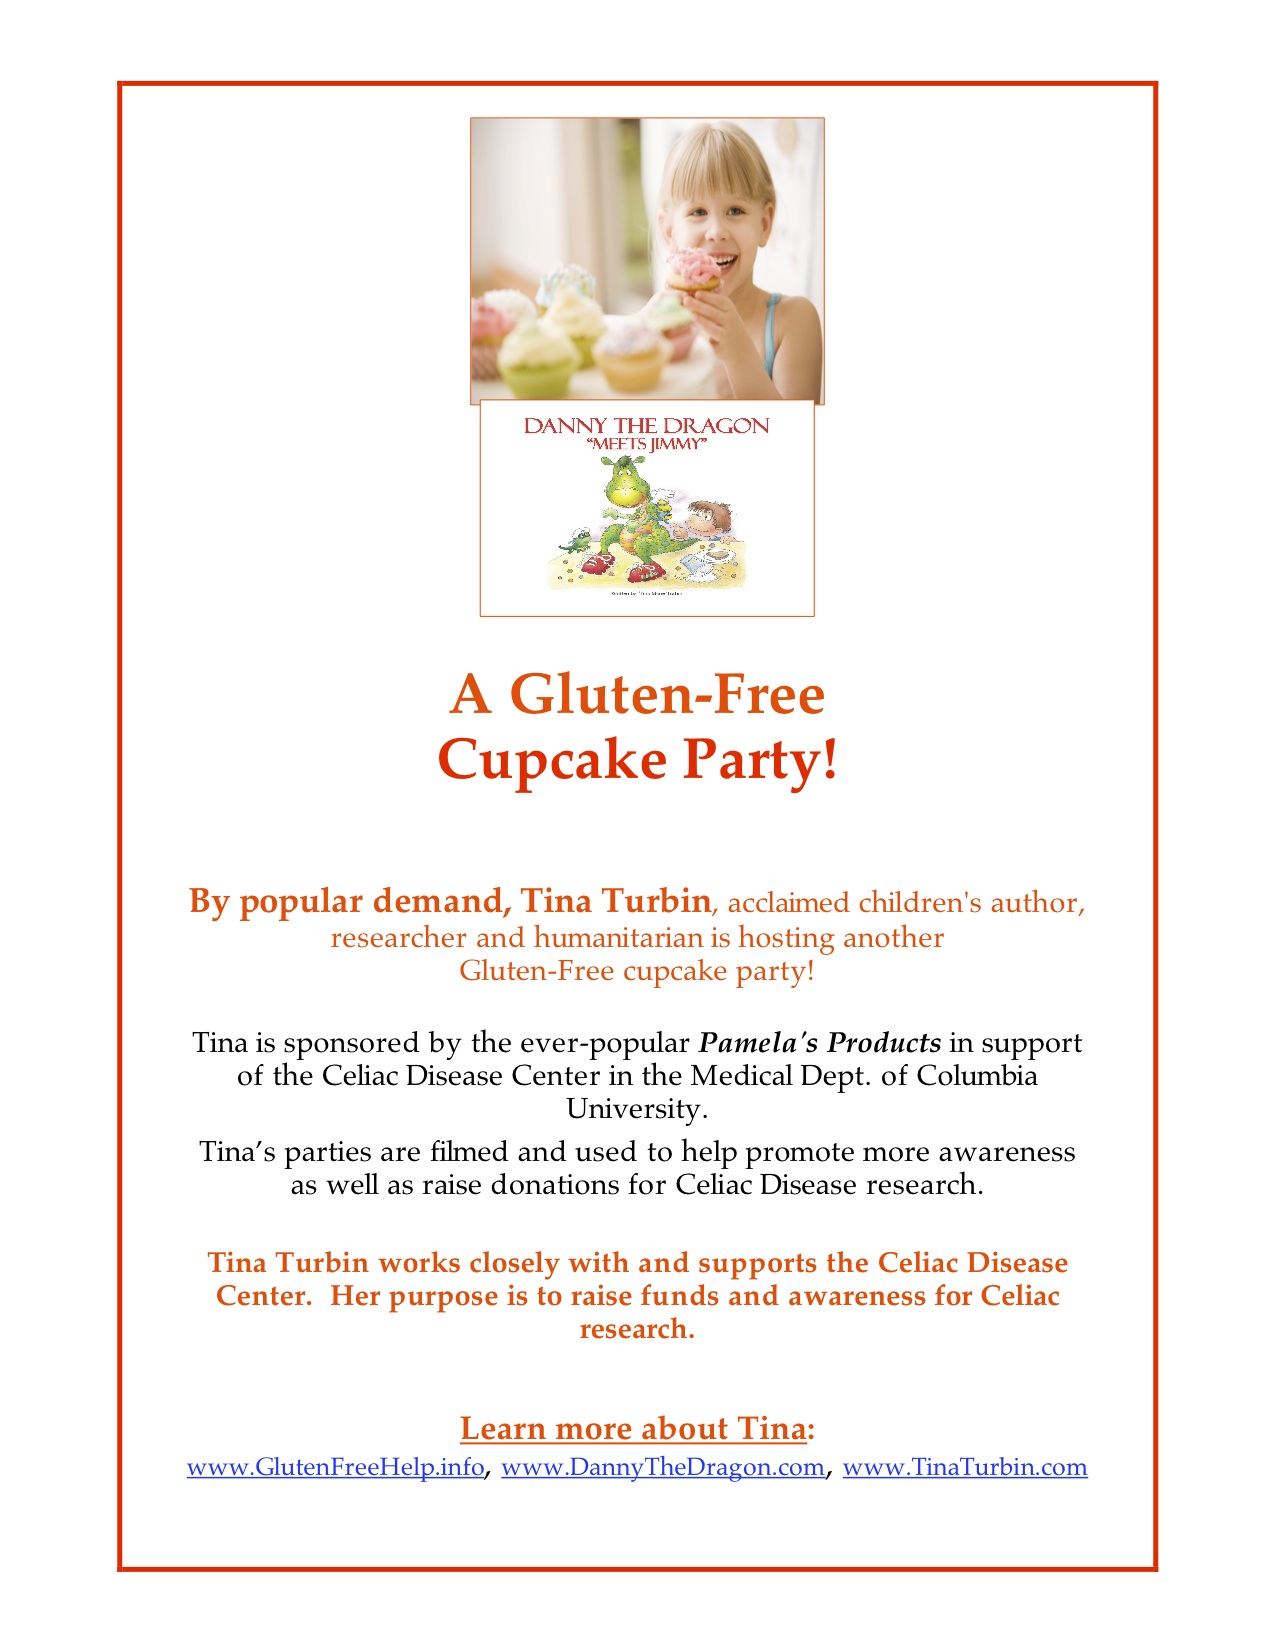 Danny the Dragon Gluten-Free Cupcake Party!